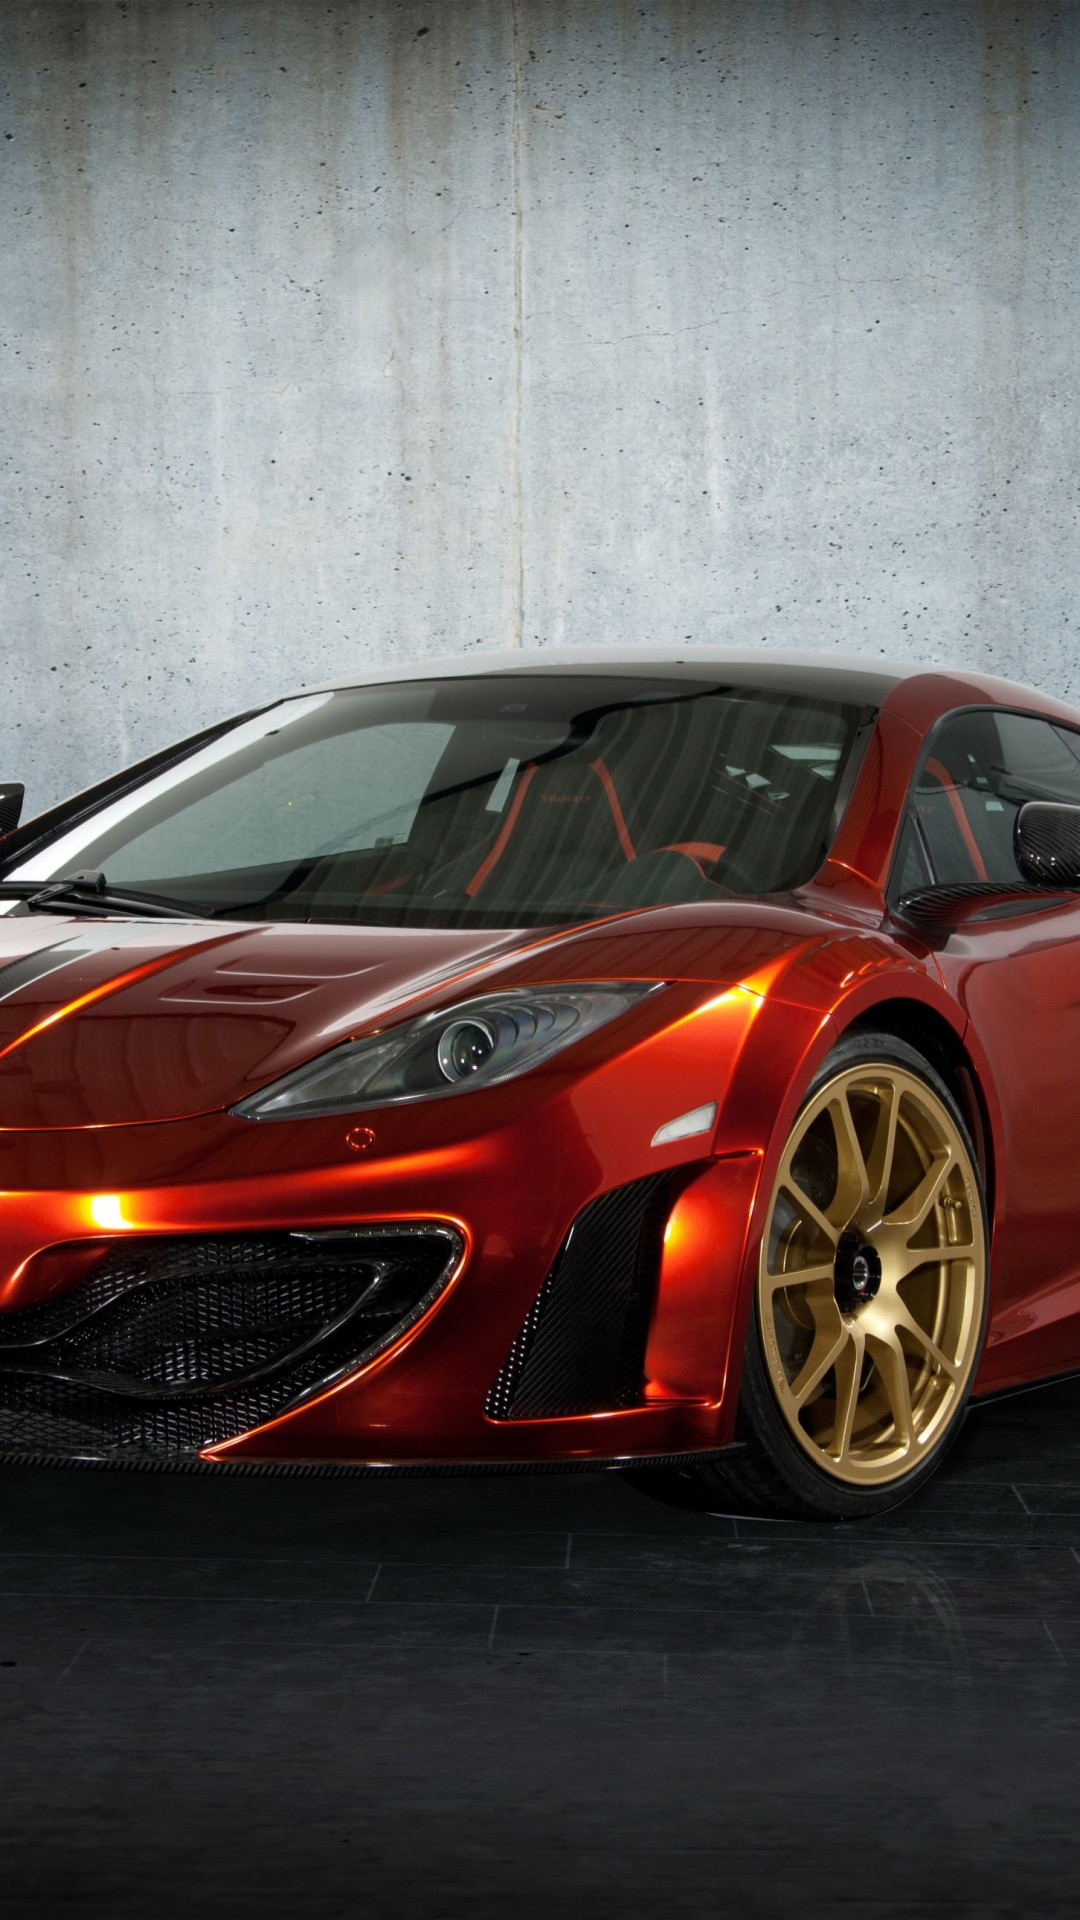 McLaren MP4-12Cf By Mansory Wallpaper for SONY Xperia Z2